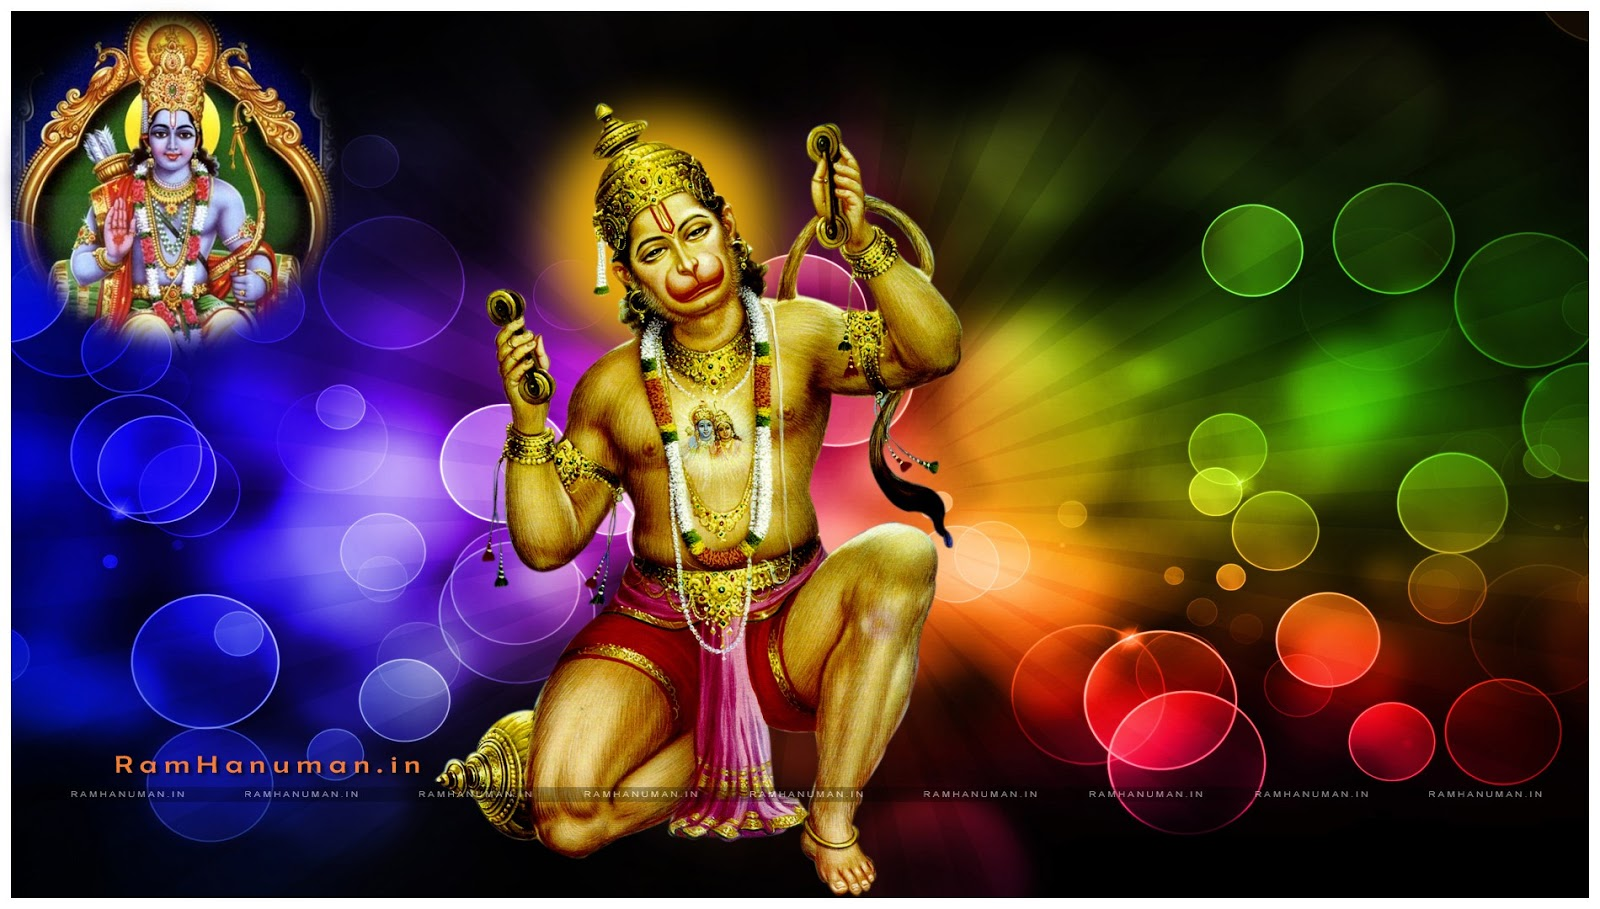 hanuman images photos pictures and wallpapers 2016 lord hanuman